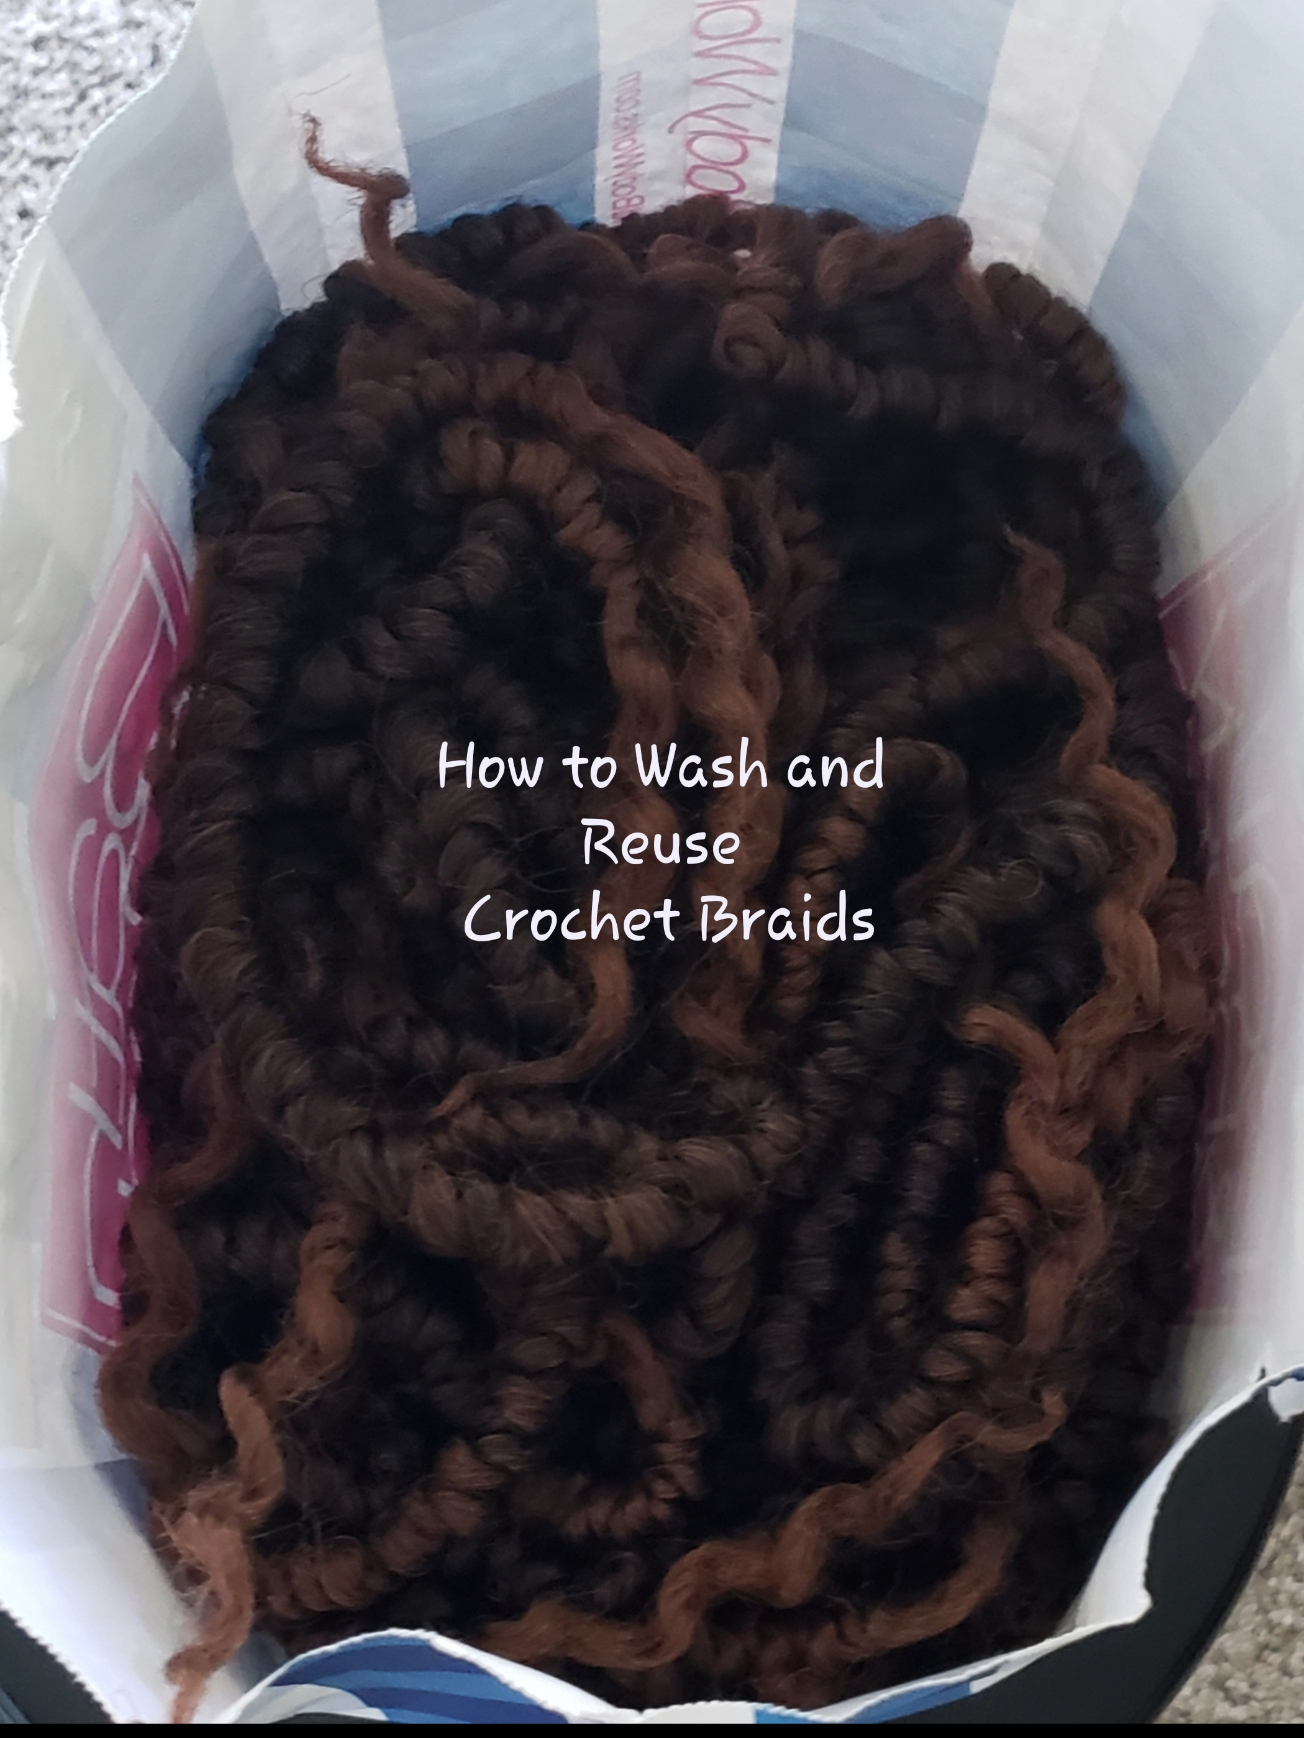 How to Wash and Reuse Crochet Braids